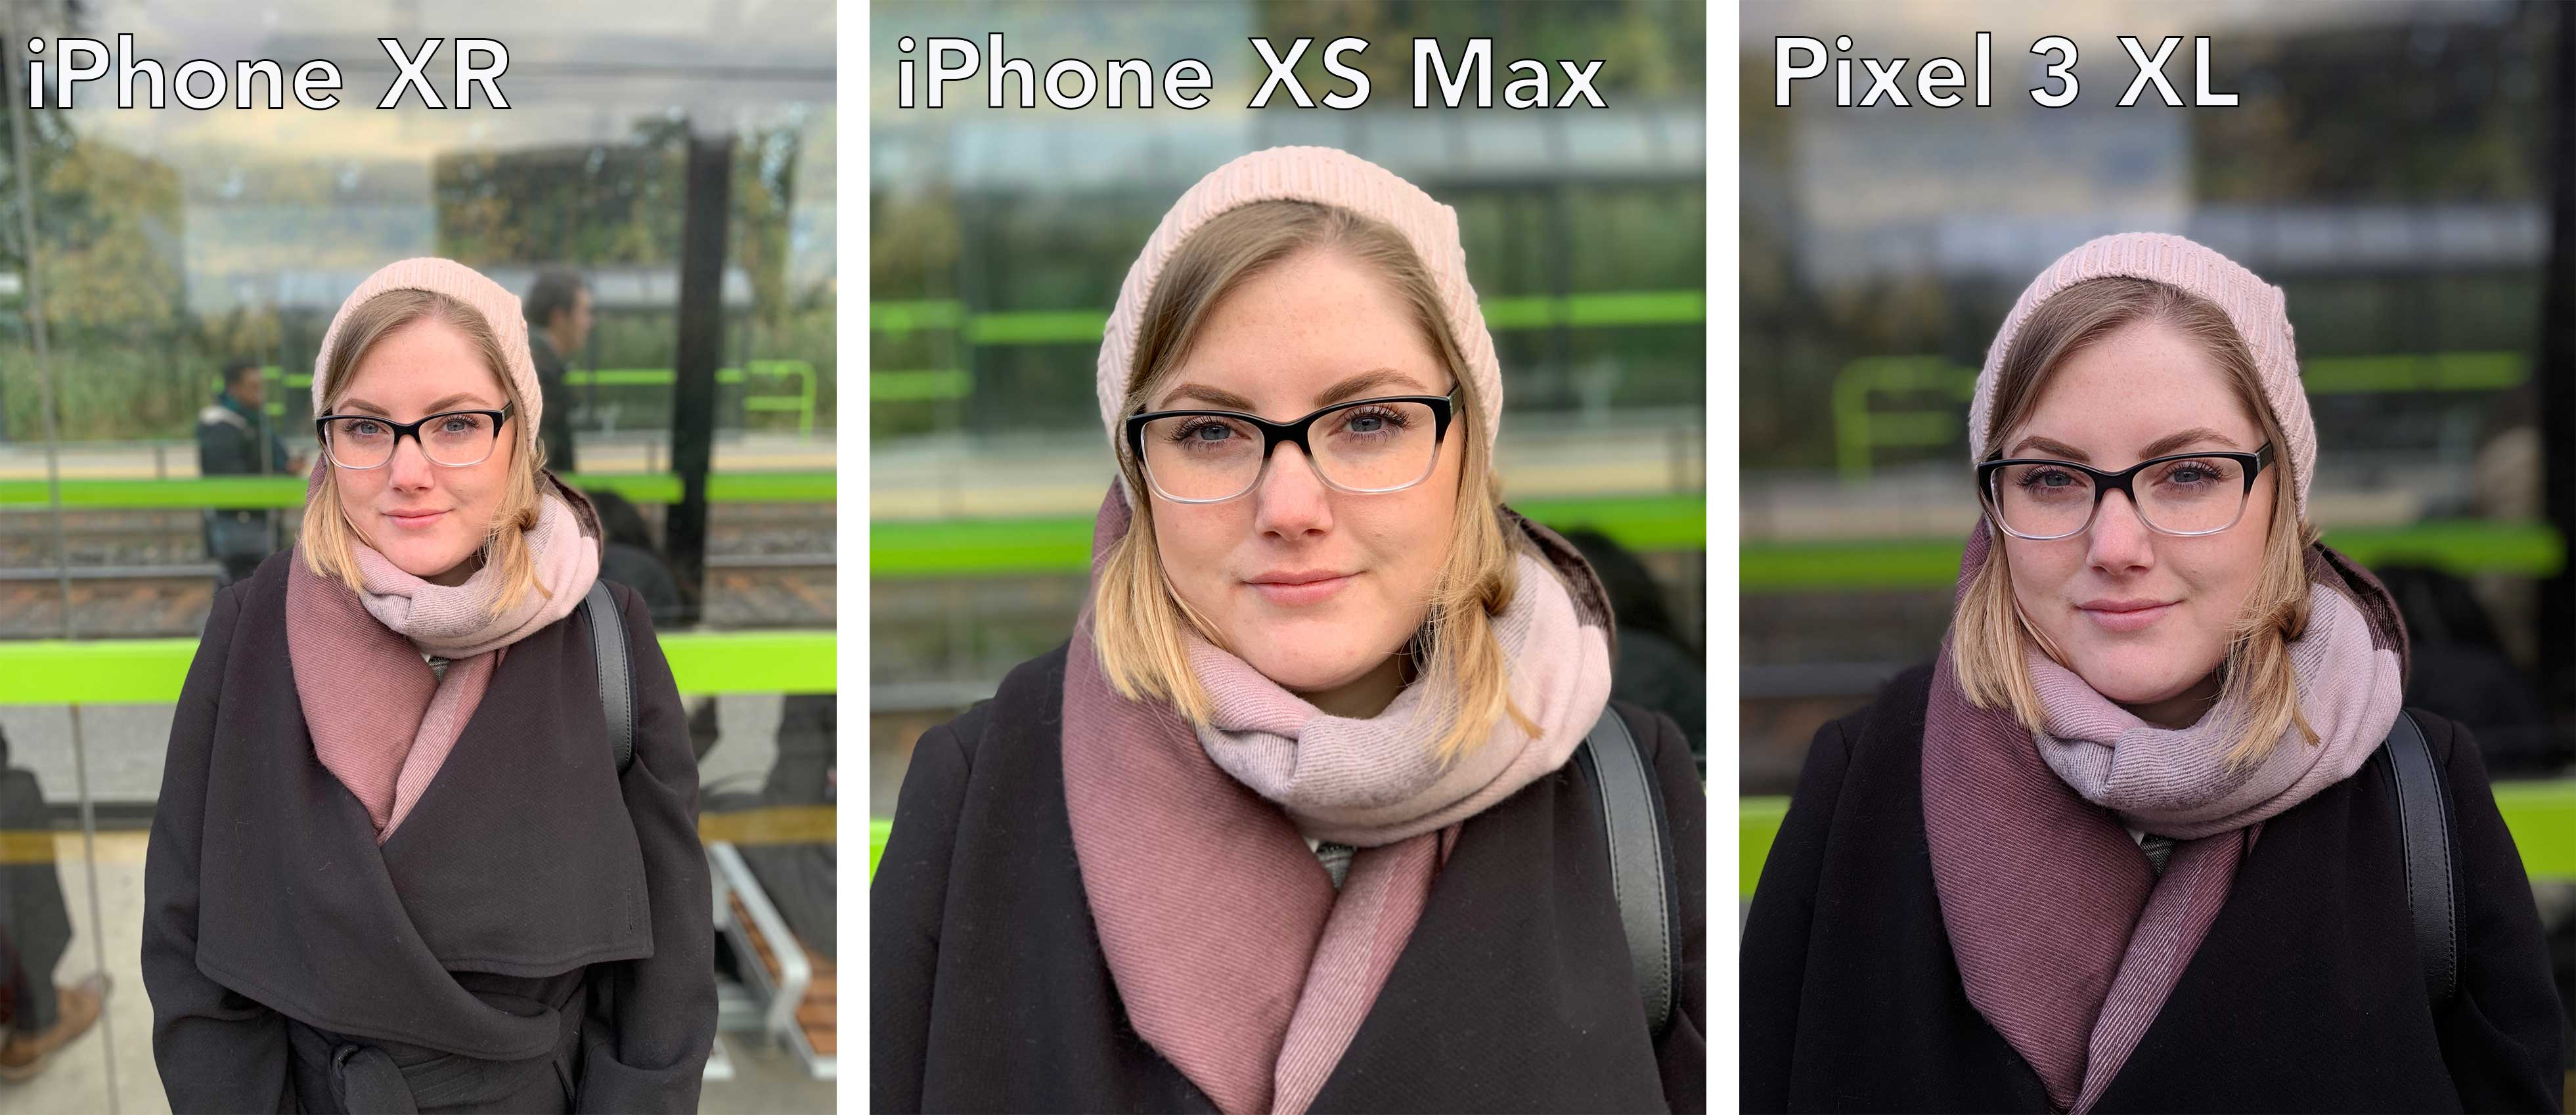 Iphone Xs Vs Xr Camera Quality - Phone Reviews. News. Opinions About Phone